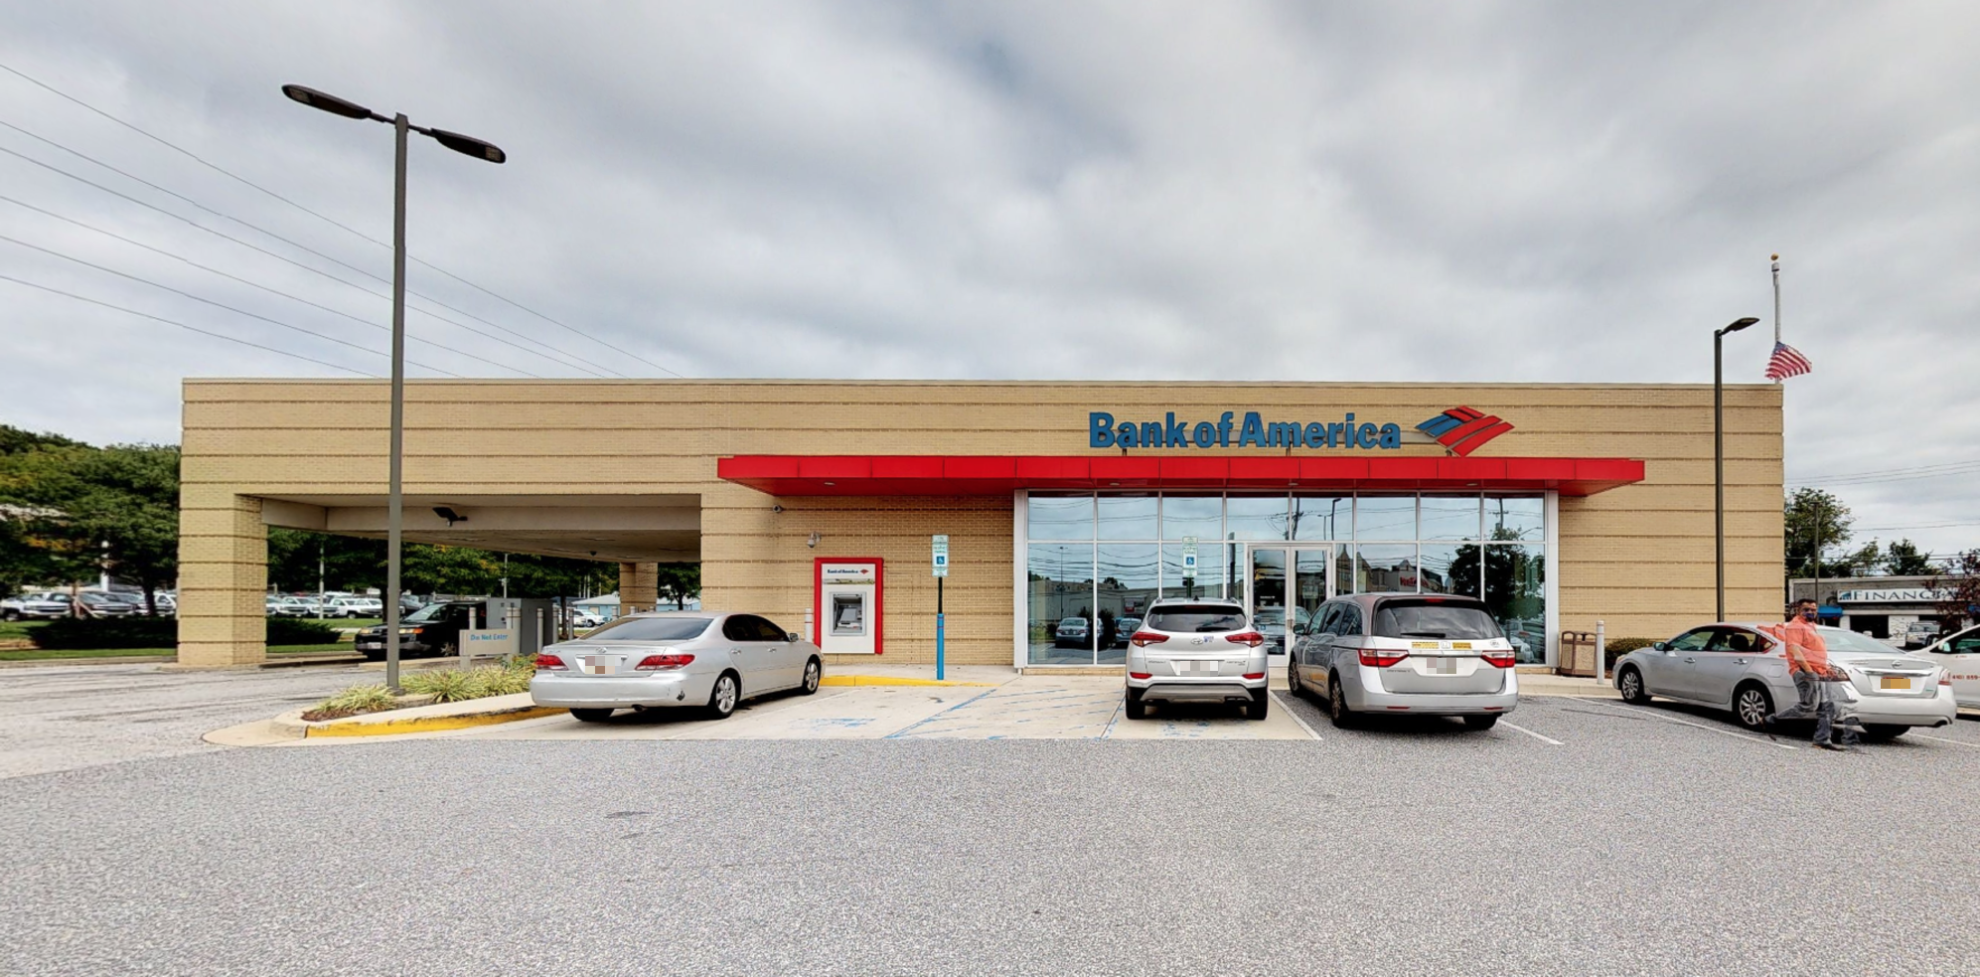 Bank of America financial center with drive-thru ATM | 1952 E Joppa Rd, Parkville, MD 21234